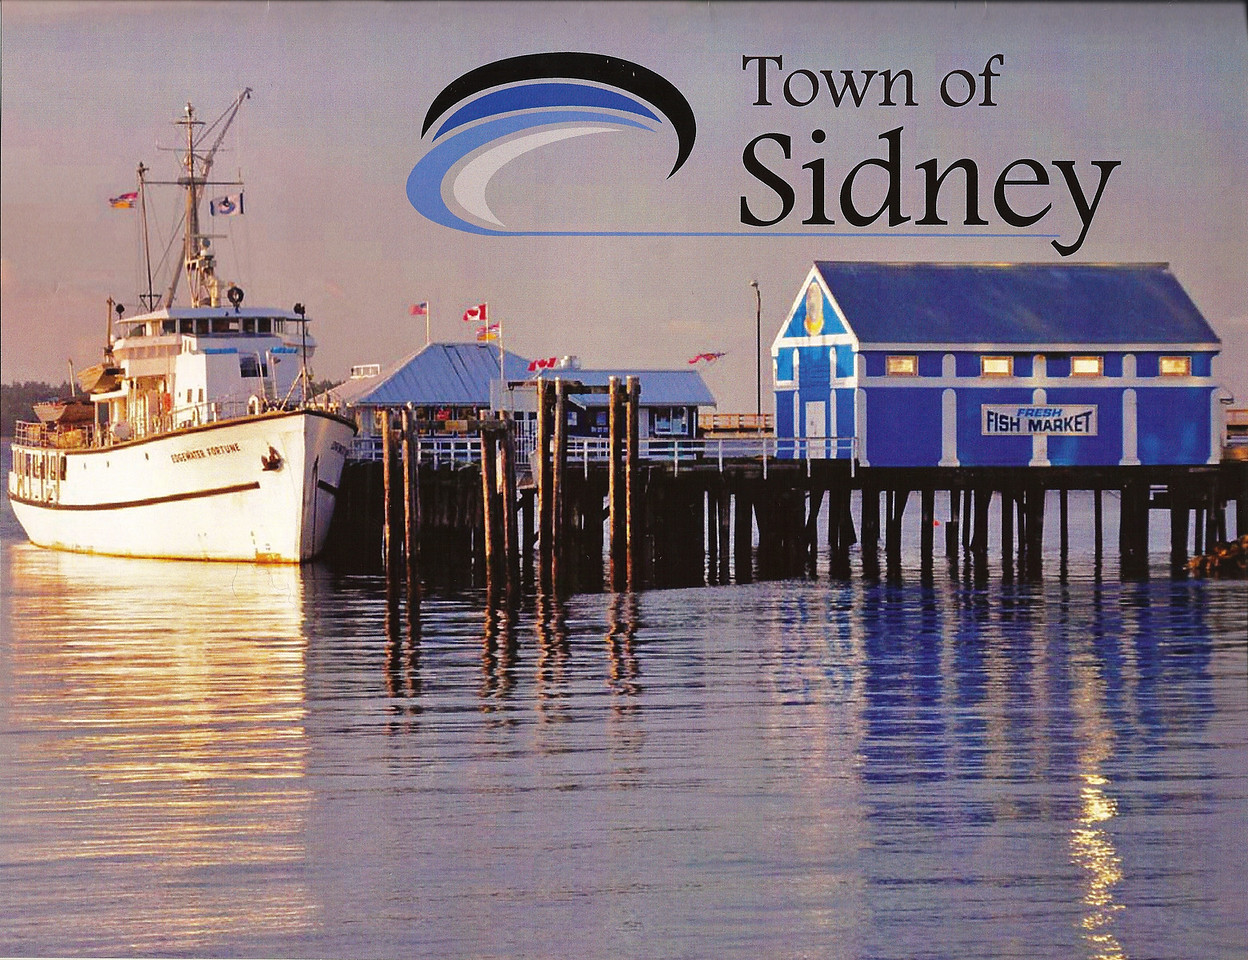 front cover, 2010 Town of Sidney calender<br /> Sidney Fish Market (same photo is displayed in the Cairns Sister-City Photo Exhibition, Australia, October 2009)